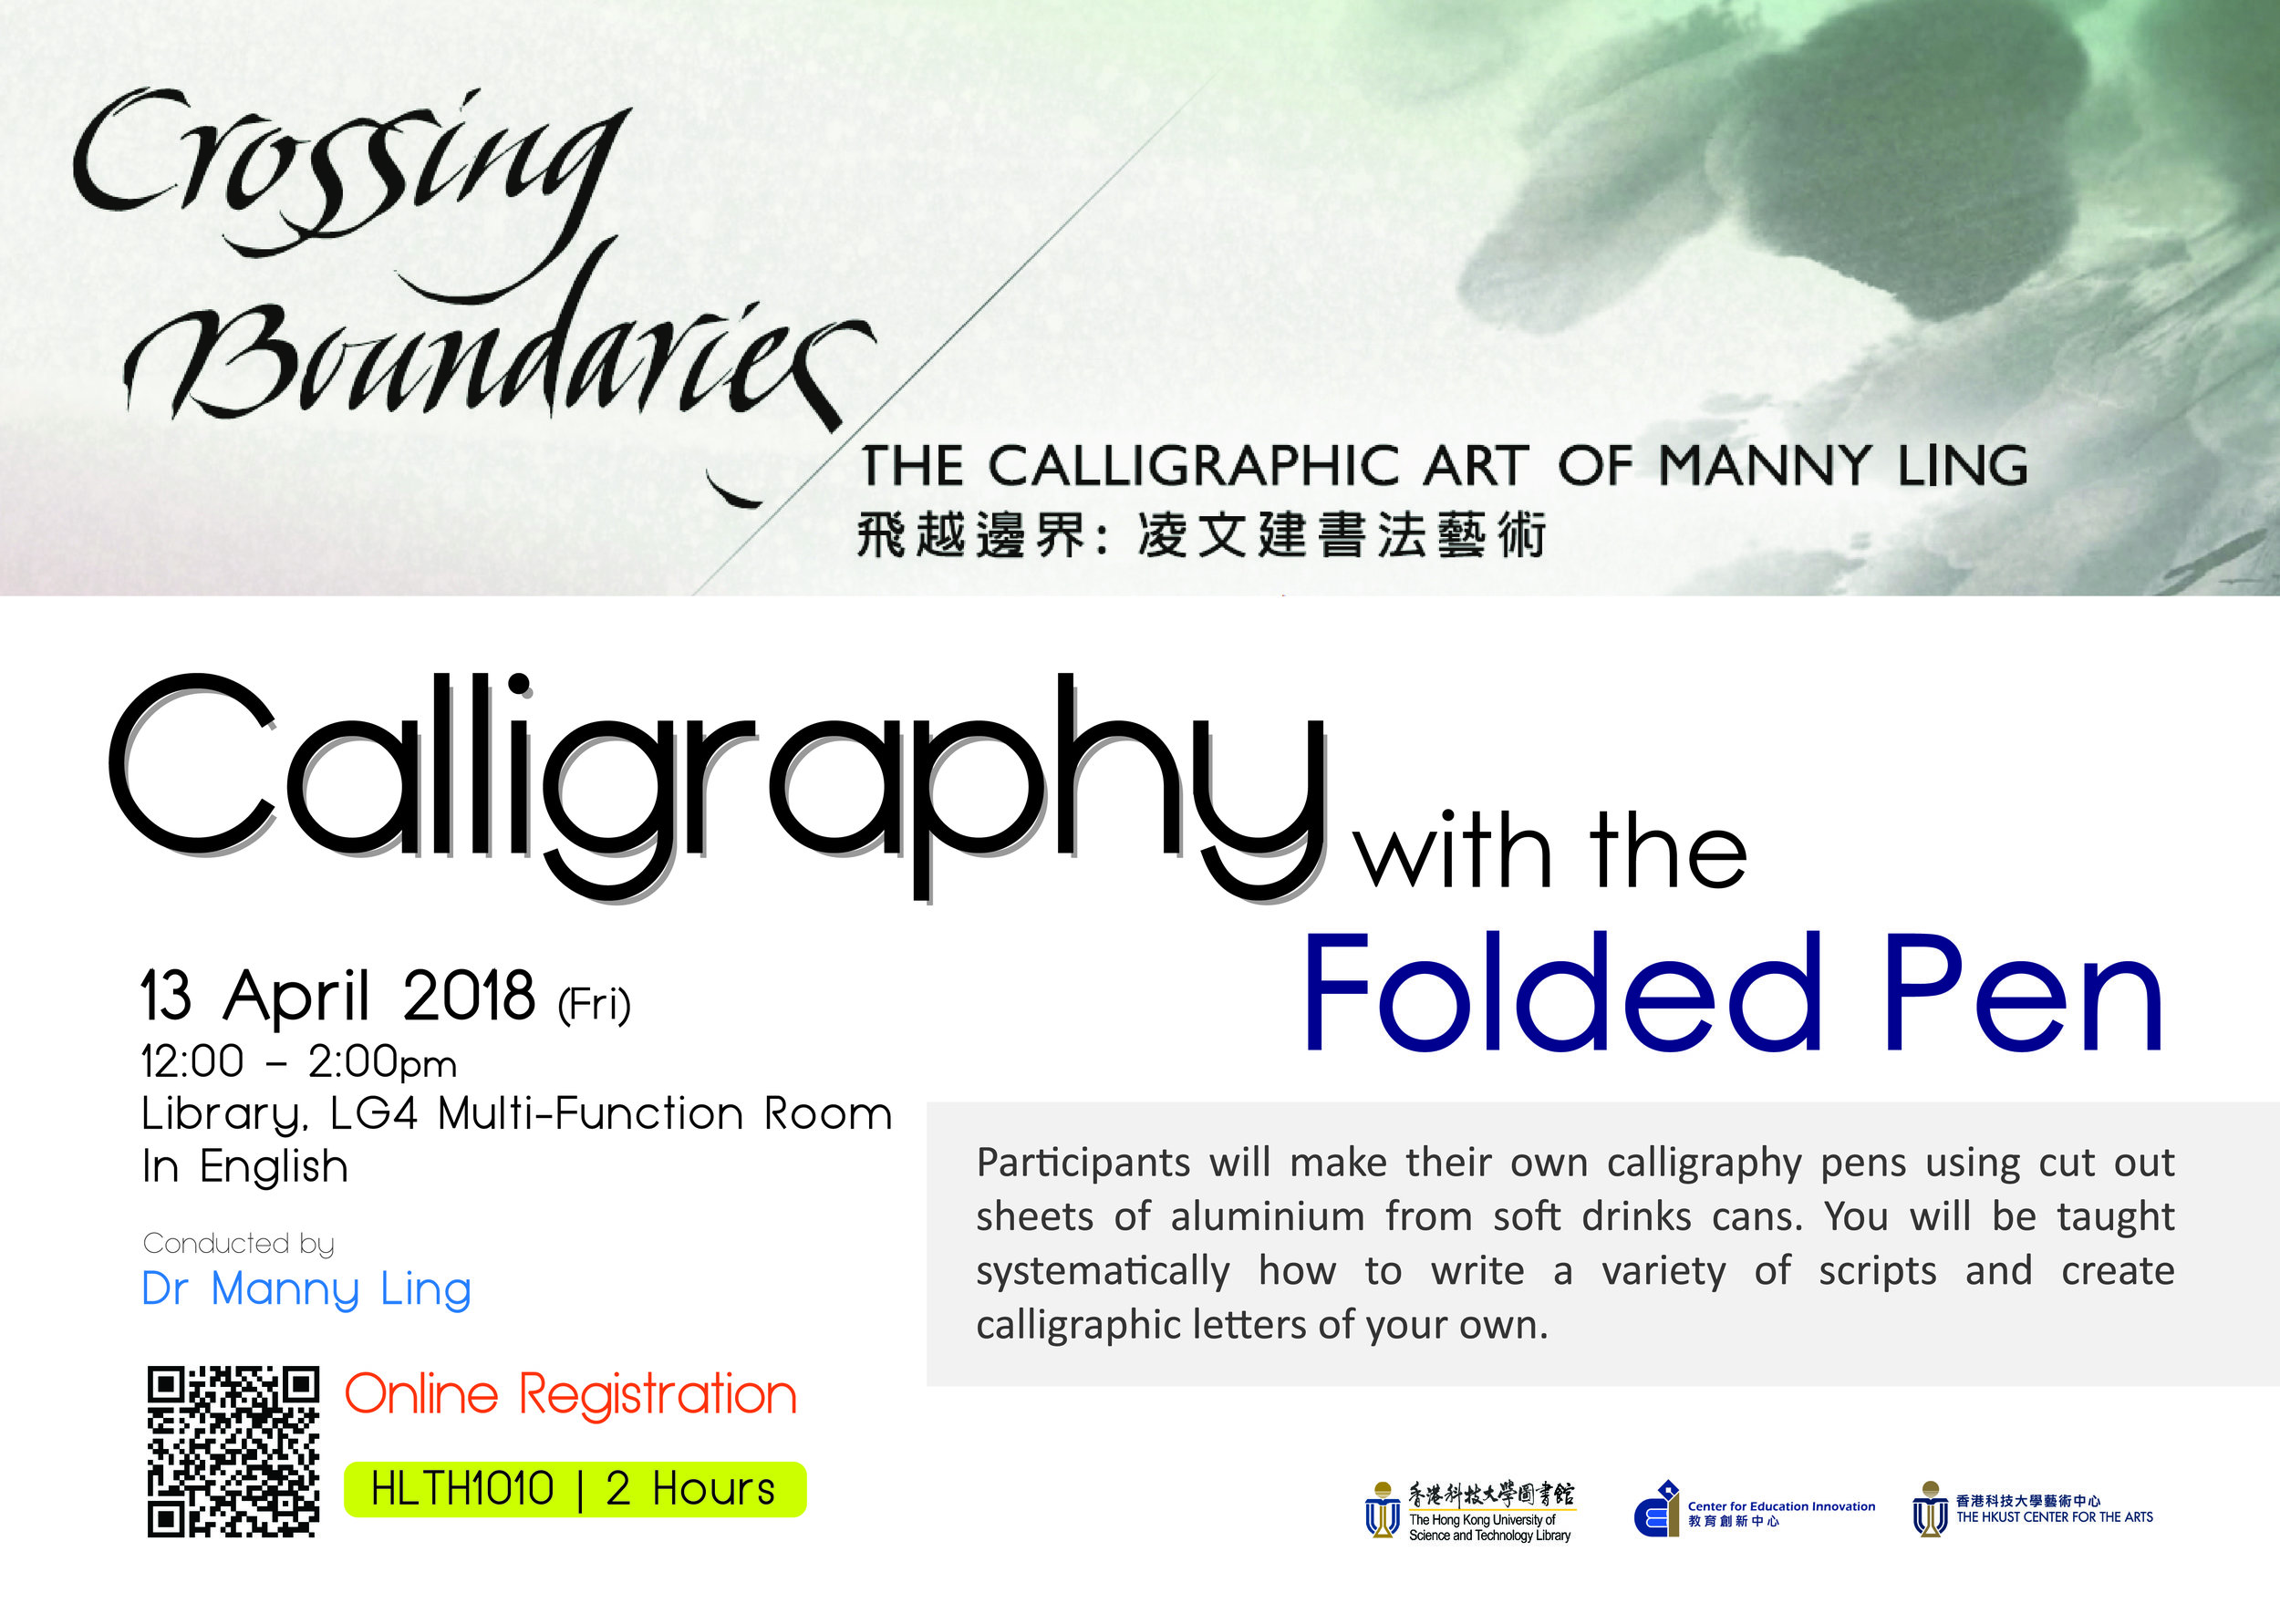 Calligraphy Online Workshop On Calligraphy With The Folded Pen The Hkust Center For